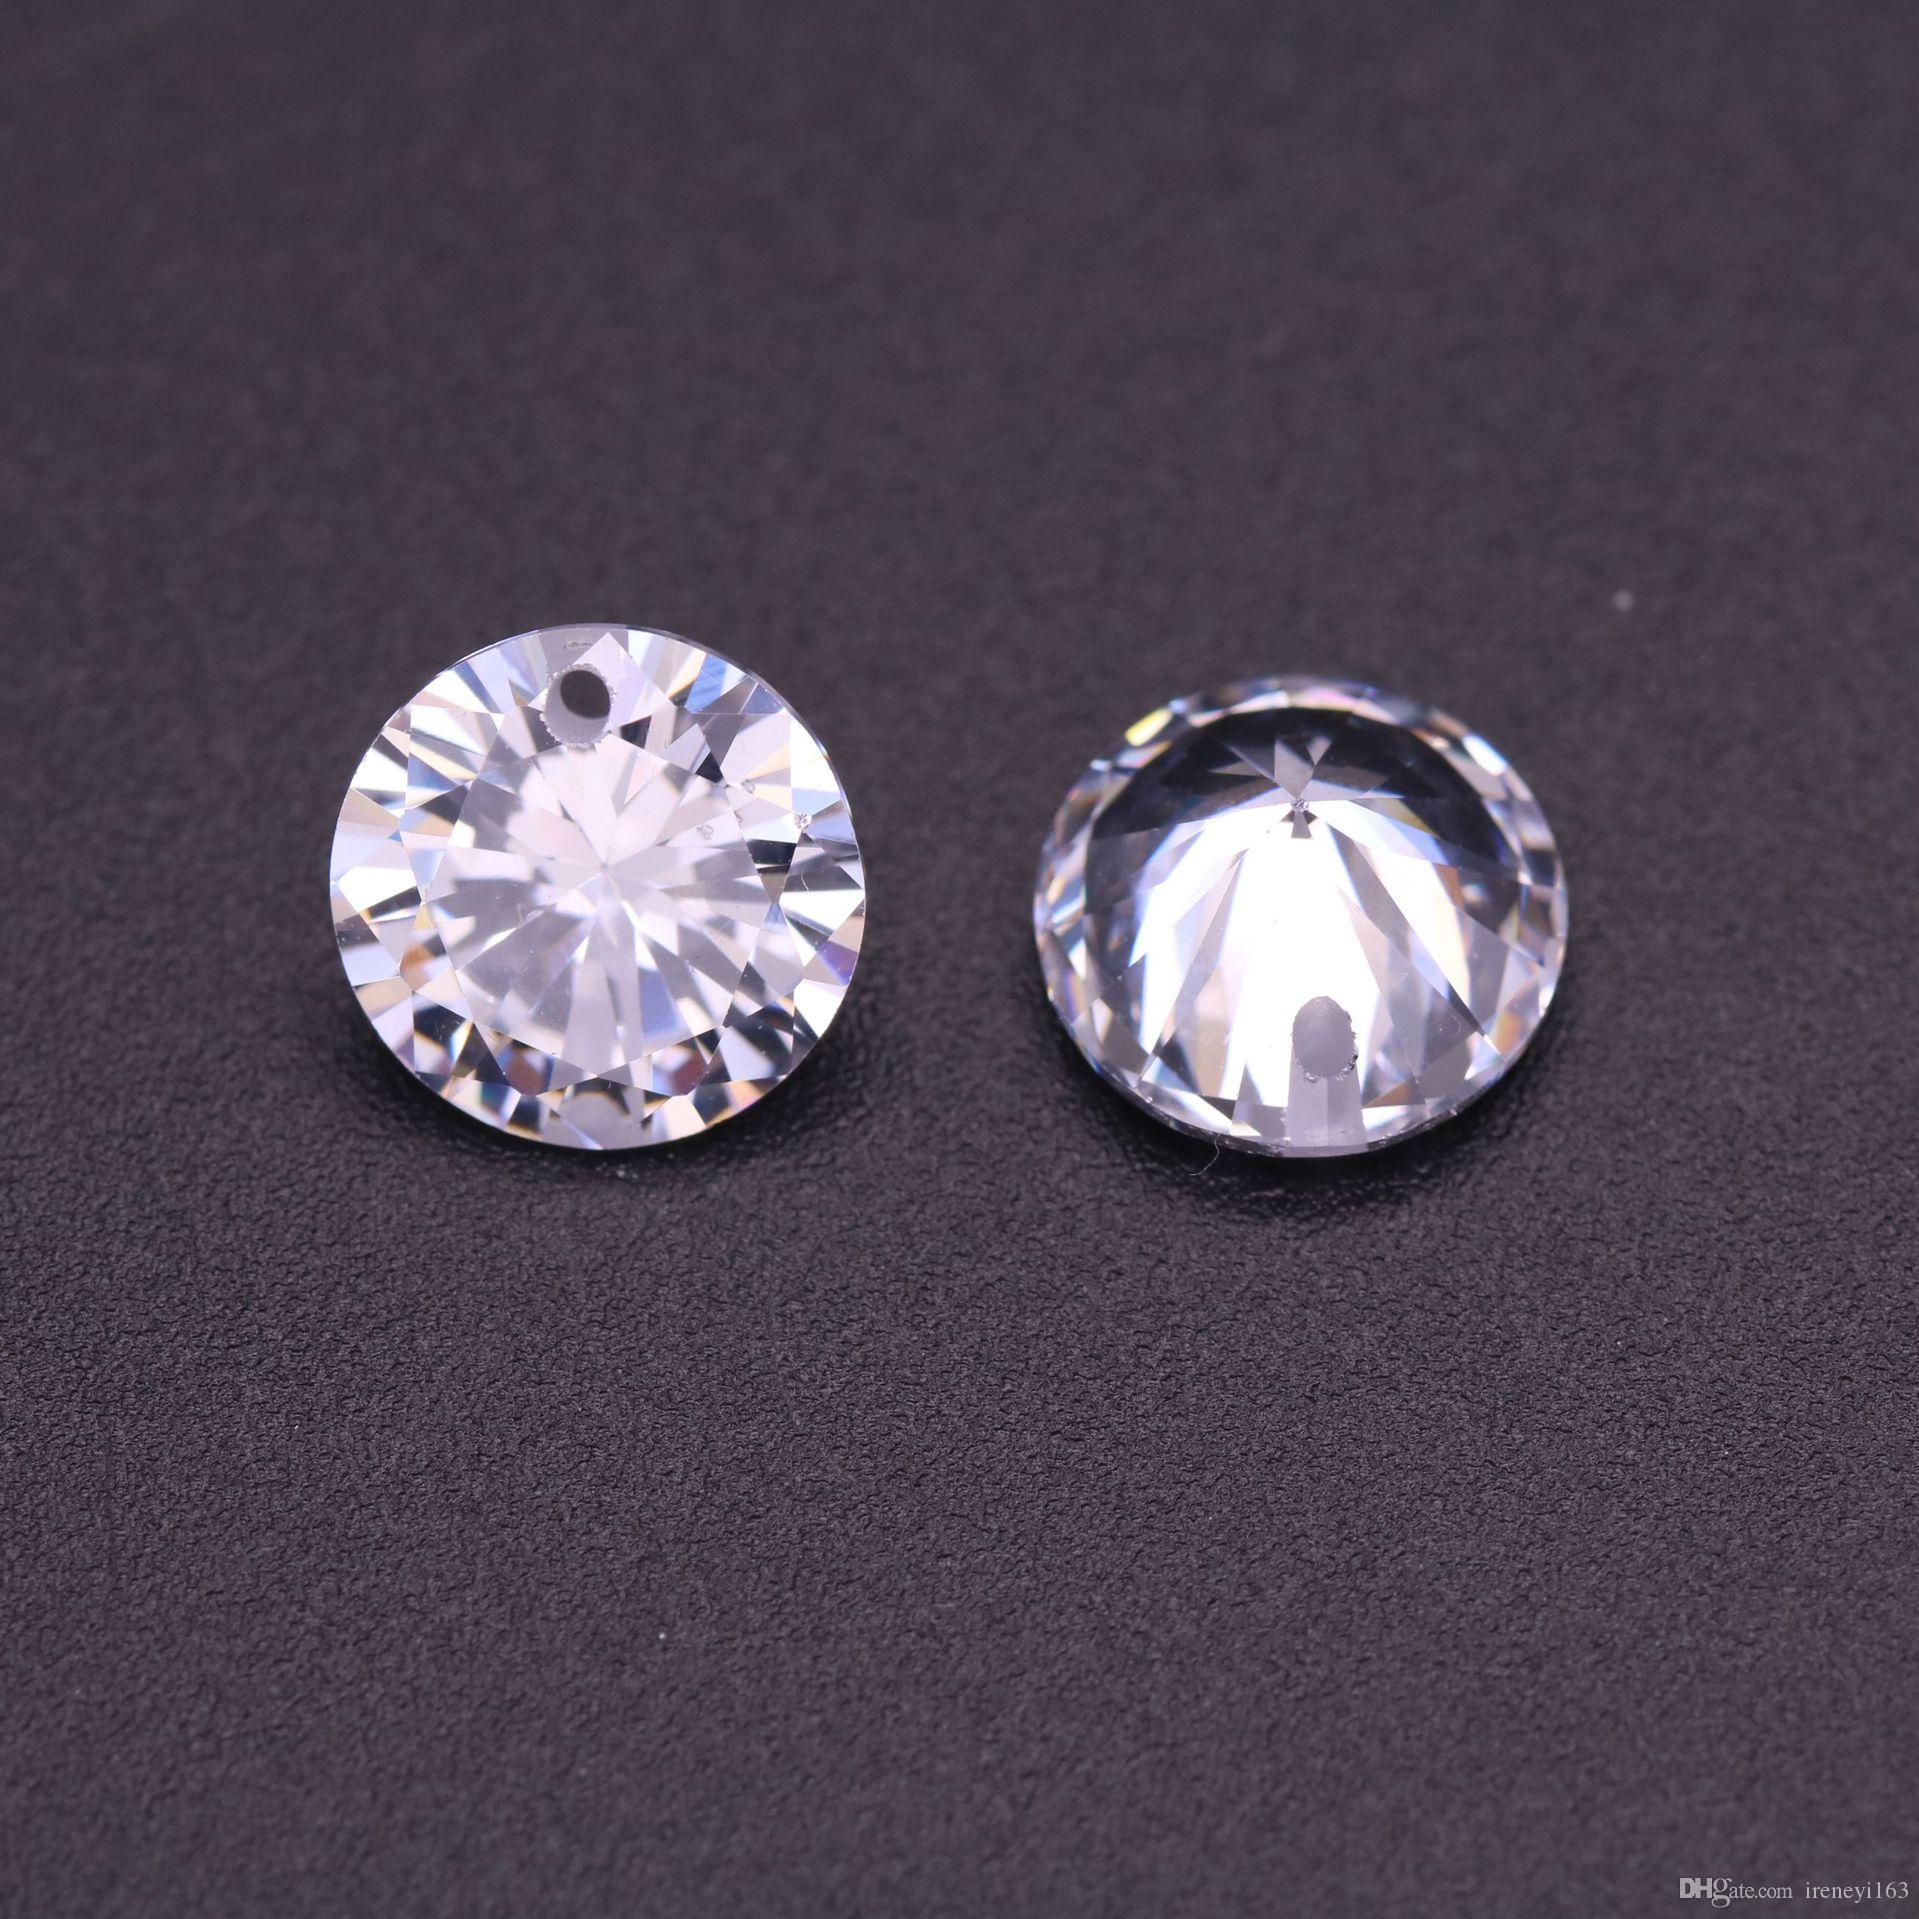 Fullsize Of Cubic Zirconia Vs Diamond